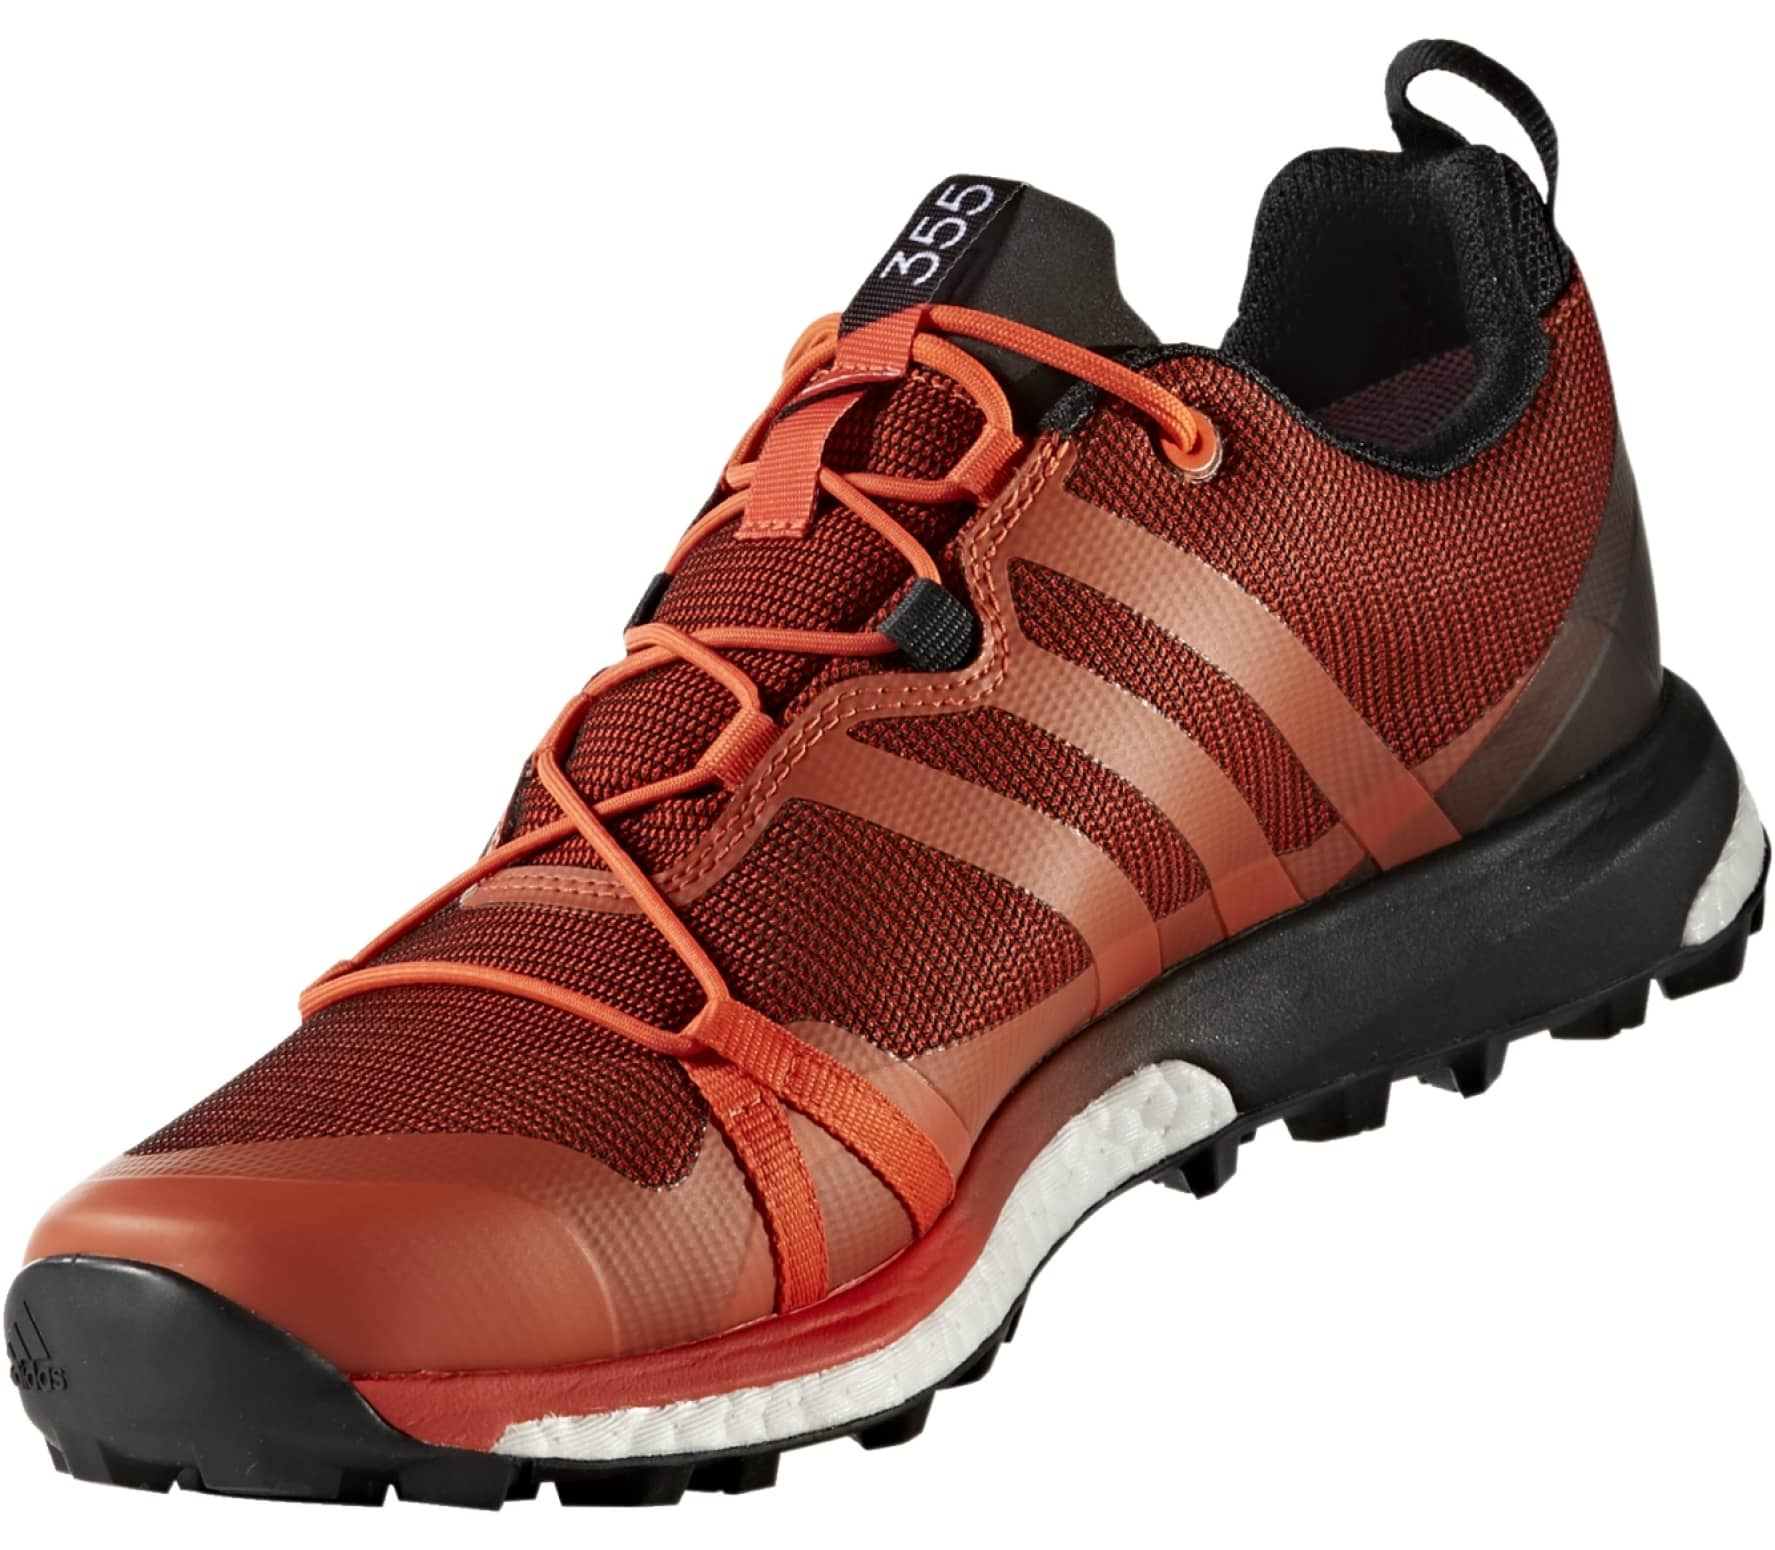 new concept 9f6e4 c4c83 Adidas - Terrex Agravic GTX mens trail running shoes (redblack)